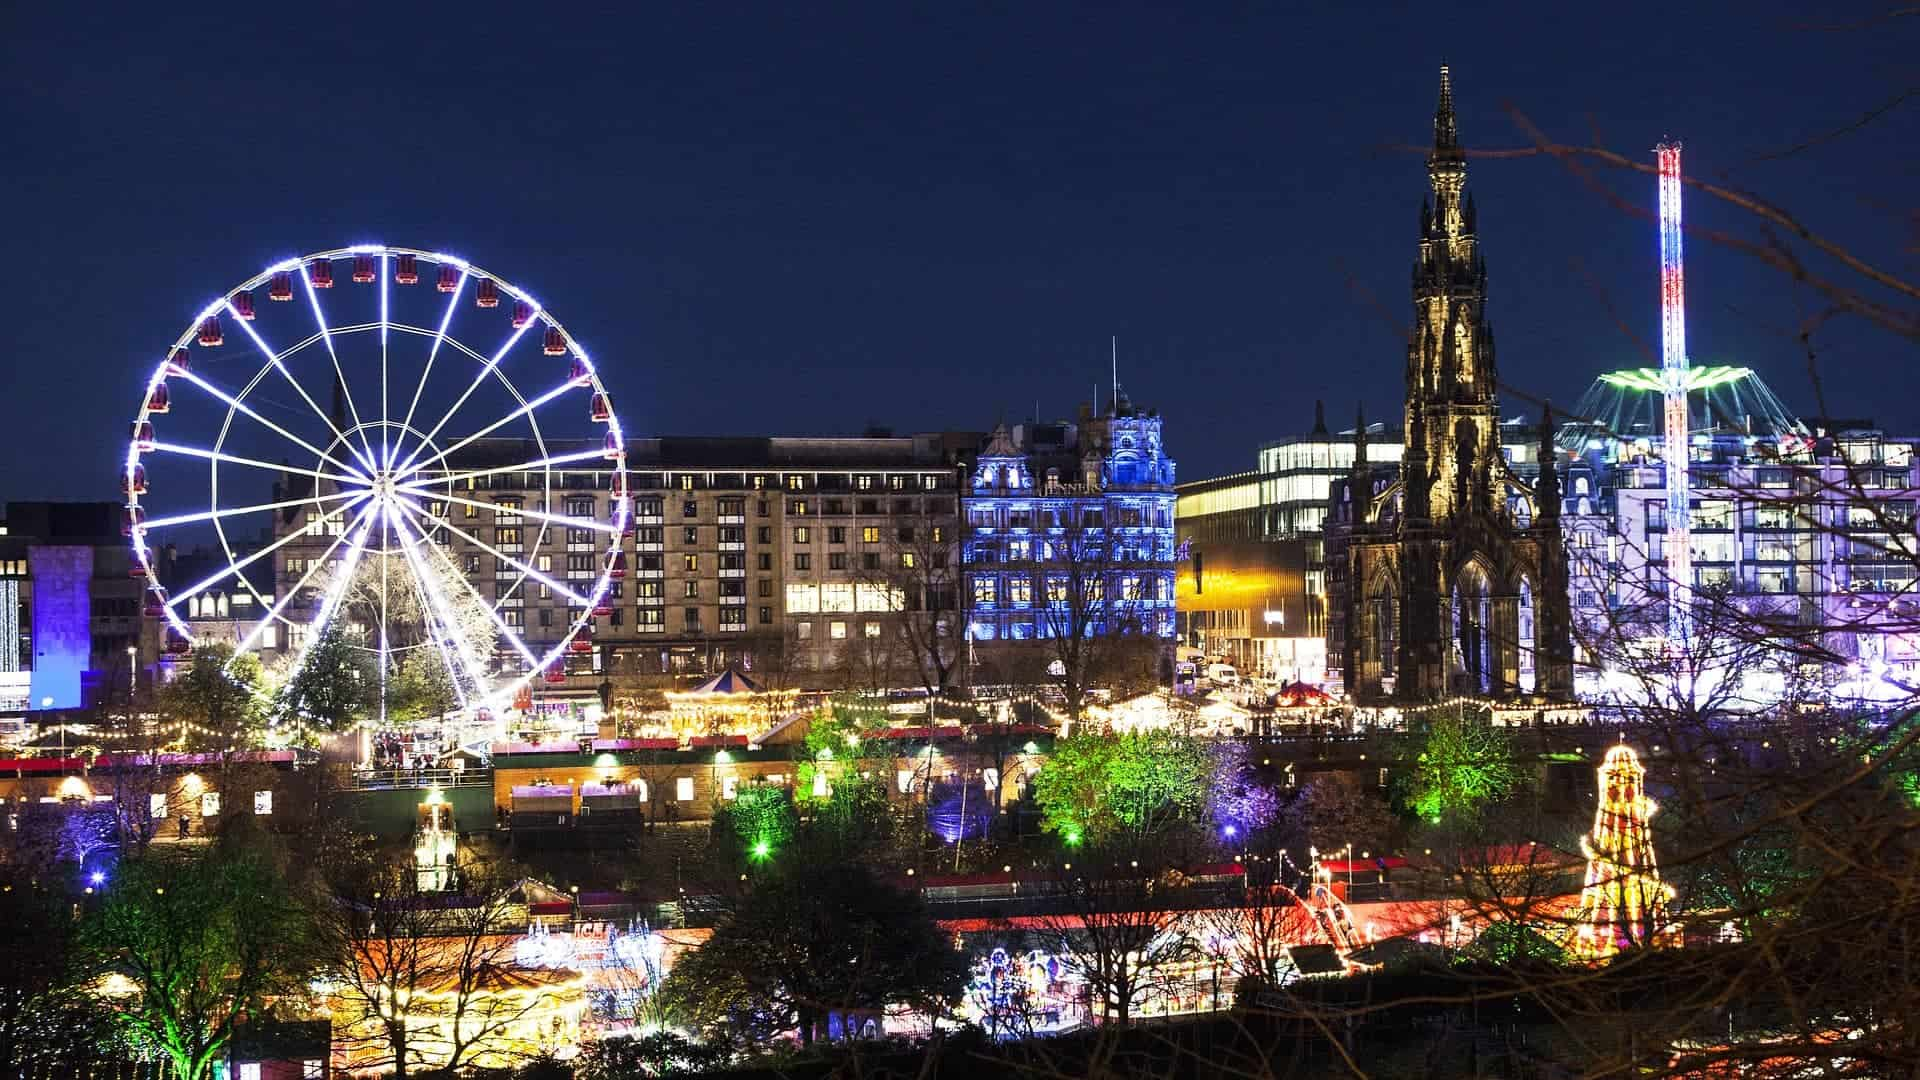 Edinburgh's Christmas 2